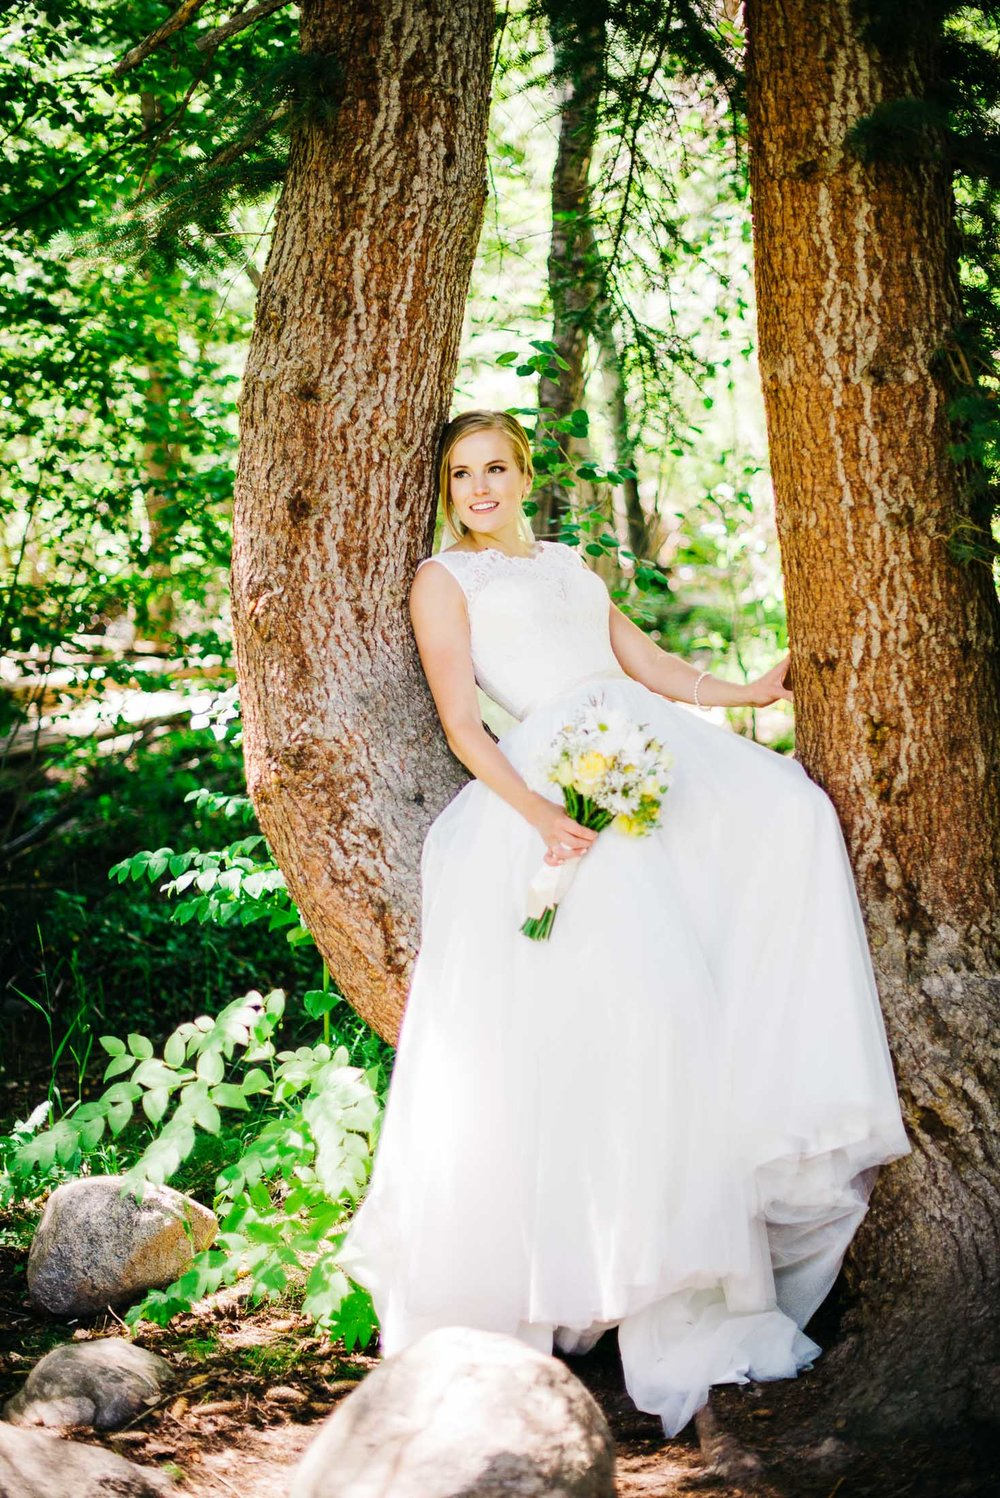 58elopement-photographer-colorado-colorado-mountain-wedding-photographer-romantic-wedding-pictures_010.jpg